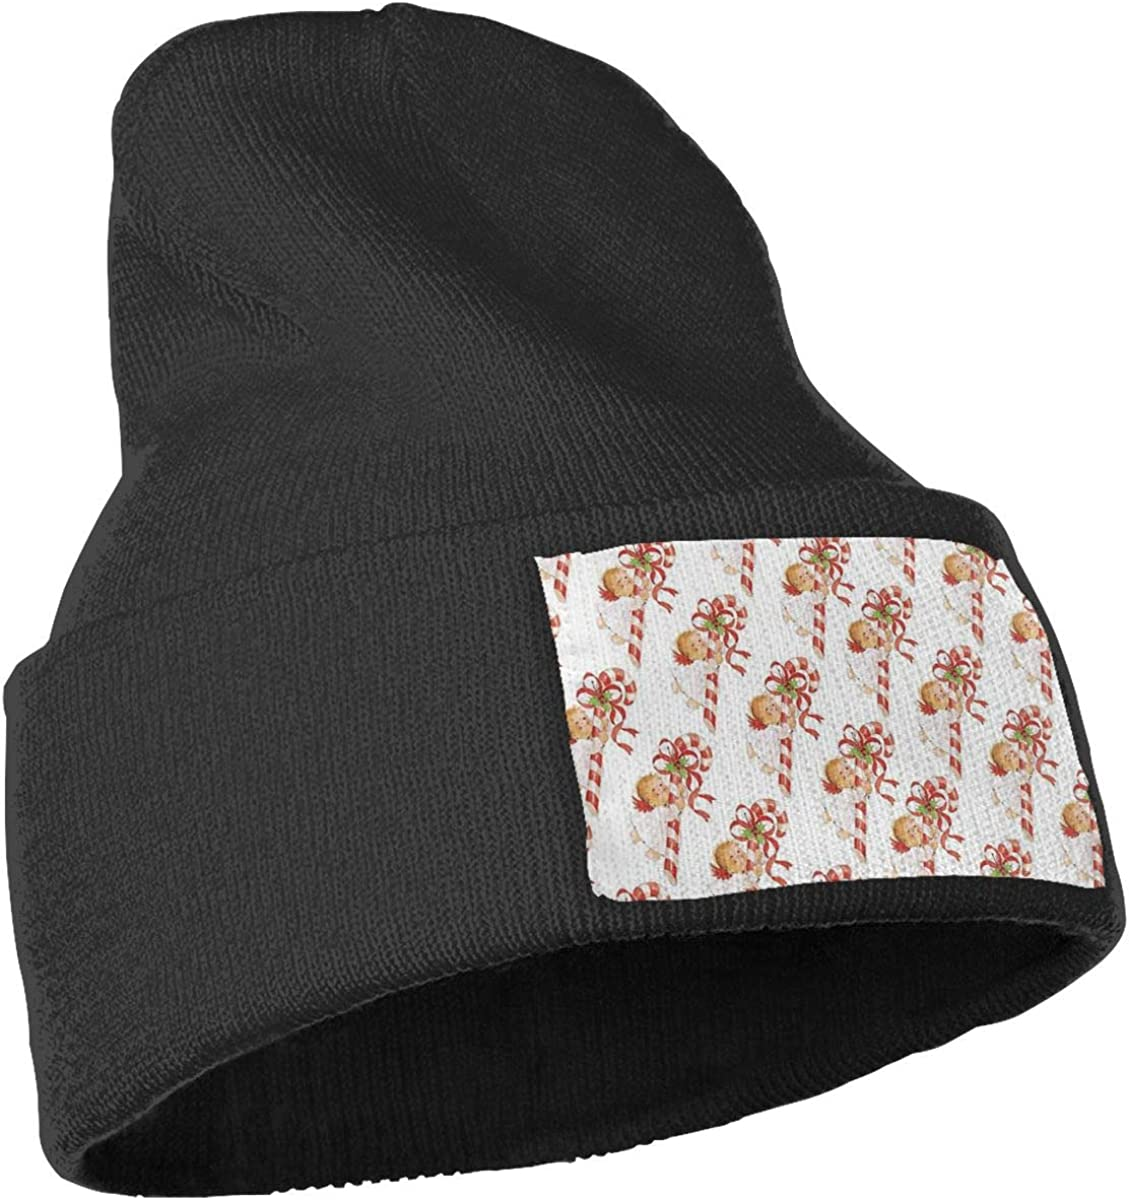 JimHappy Merry Christmas Hat for Men and Women Winter Warm Hats Knit Slouchy Thick Skull Cap Black